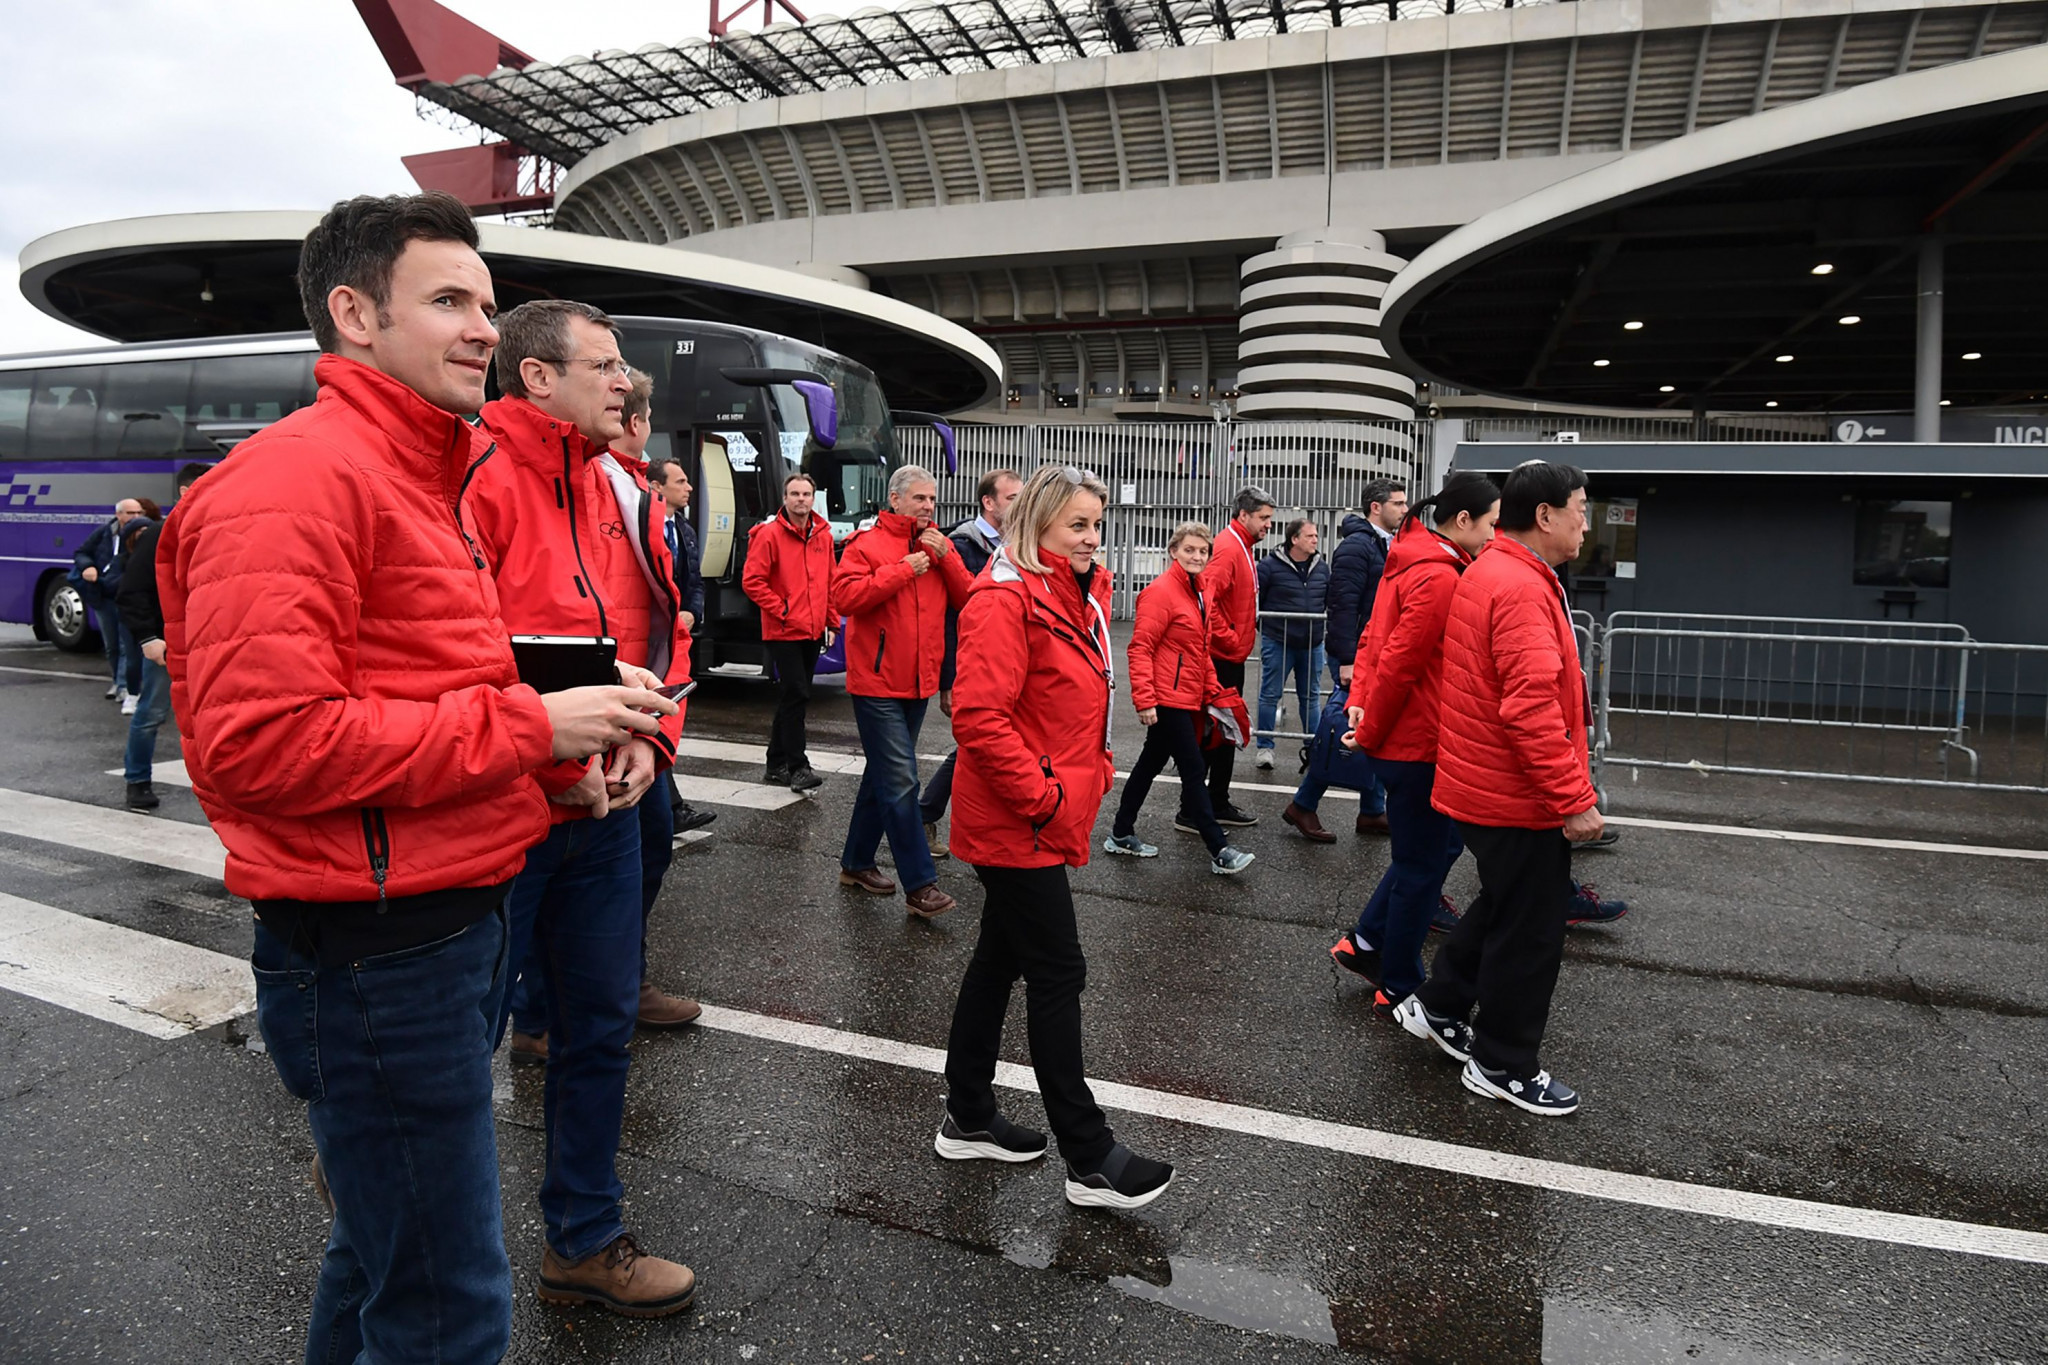 Members of the International Olympic Committee's Evaluation Commission visited the famous San Siro stadium shared by the city's two famous football clubs in Milan in April during an inspection visit ©Getty Images